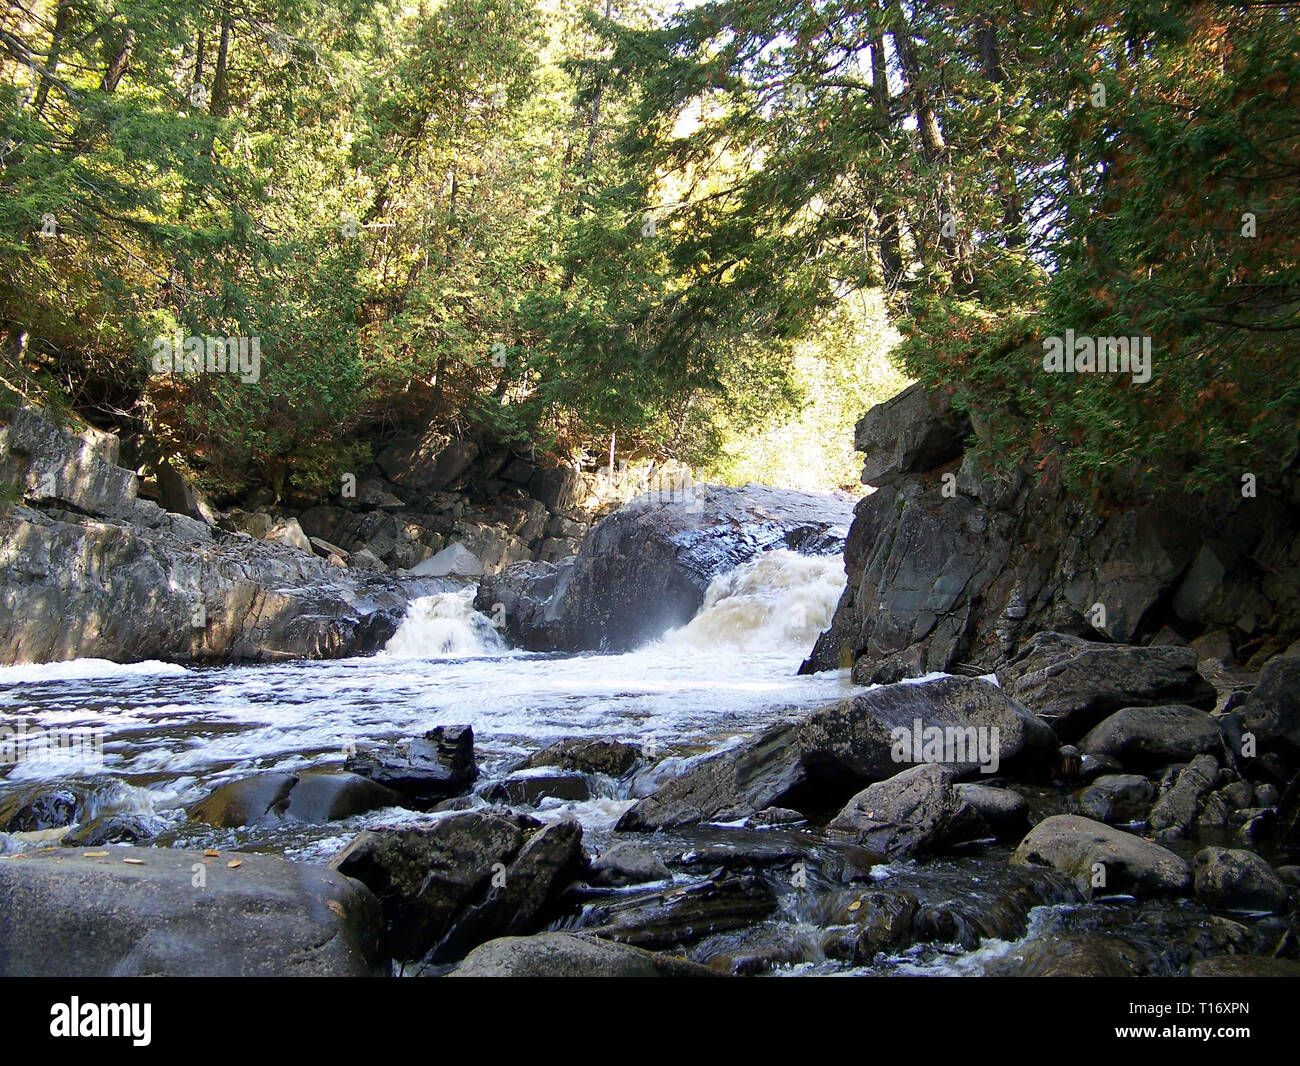 Maine mountain stream with rapids and rocky and tree lined shores flows swiftly through a drop in the river bed as it heads to a larger body of water. - Stock Image